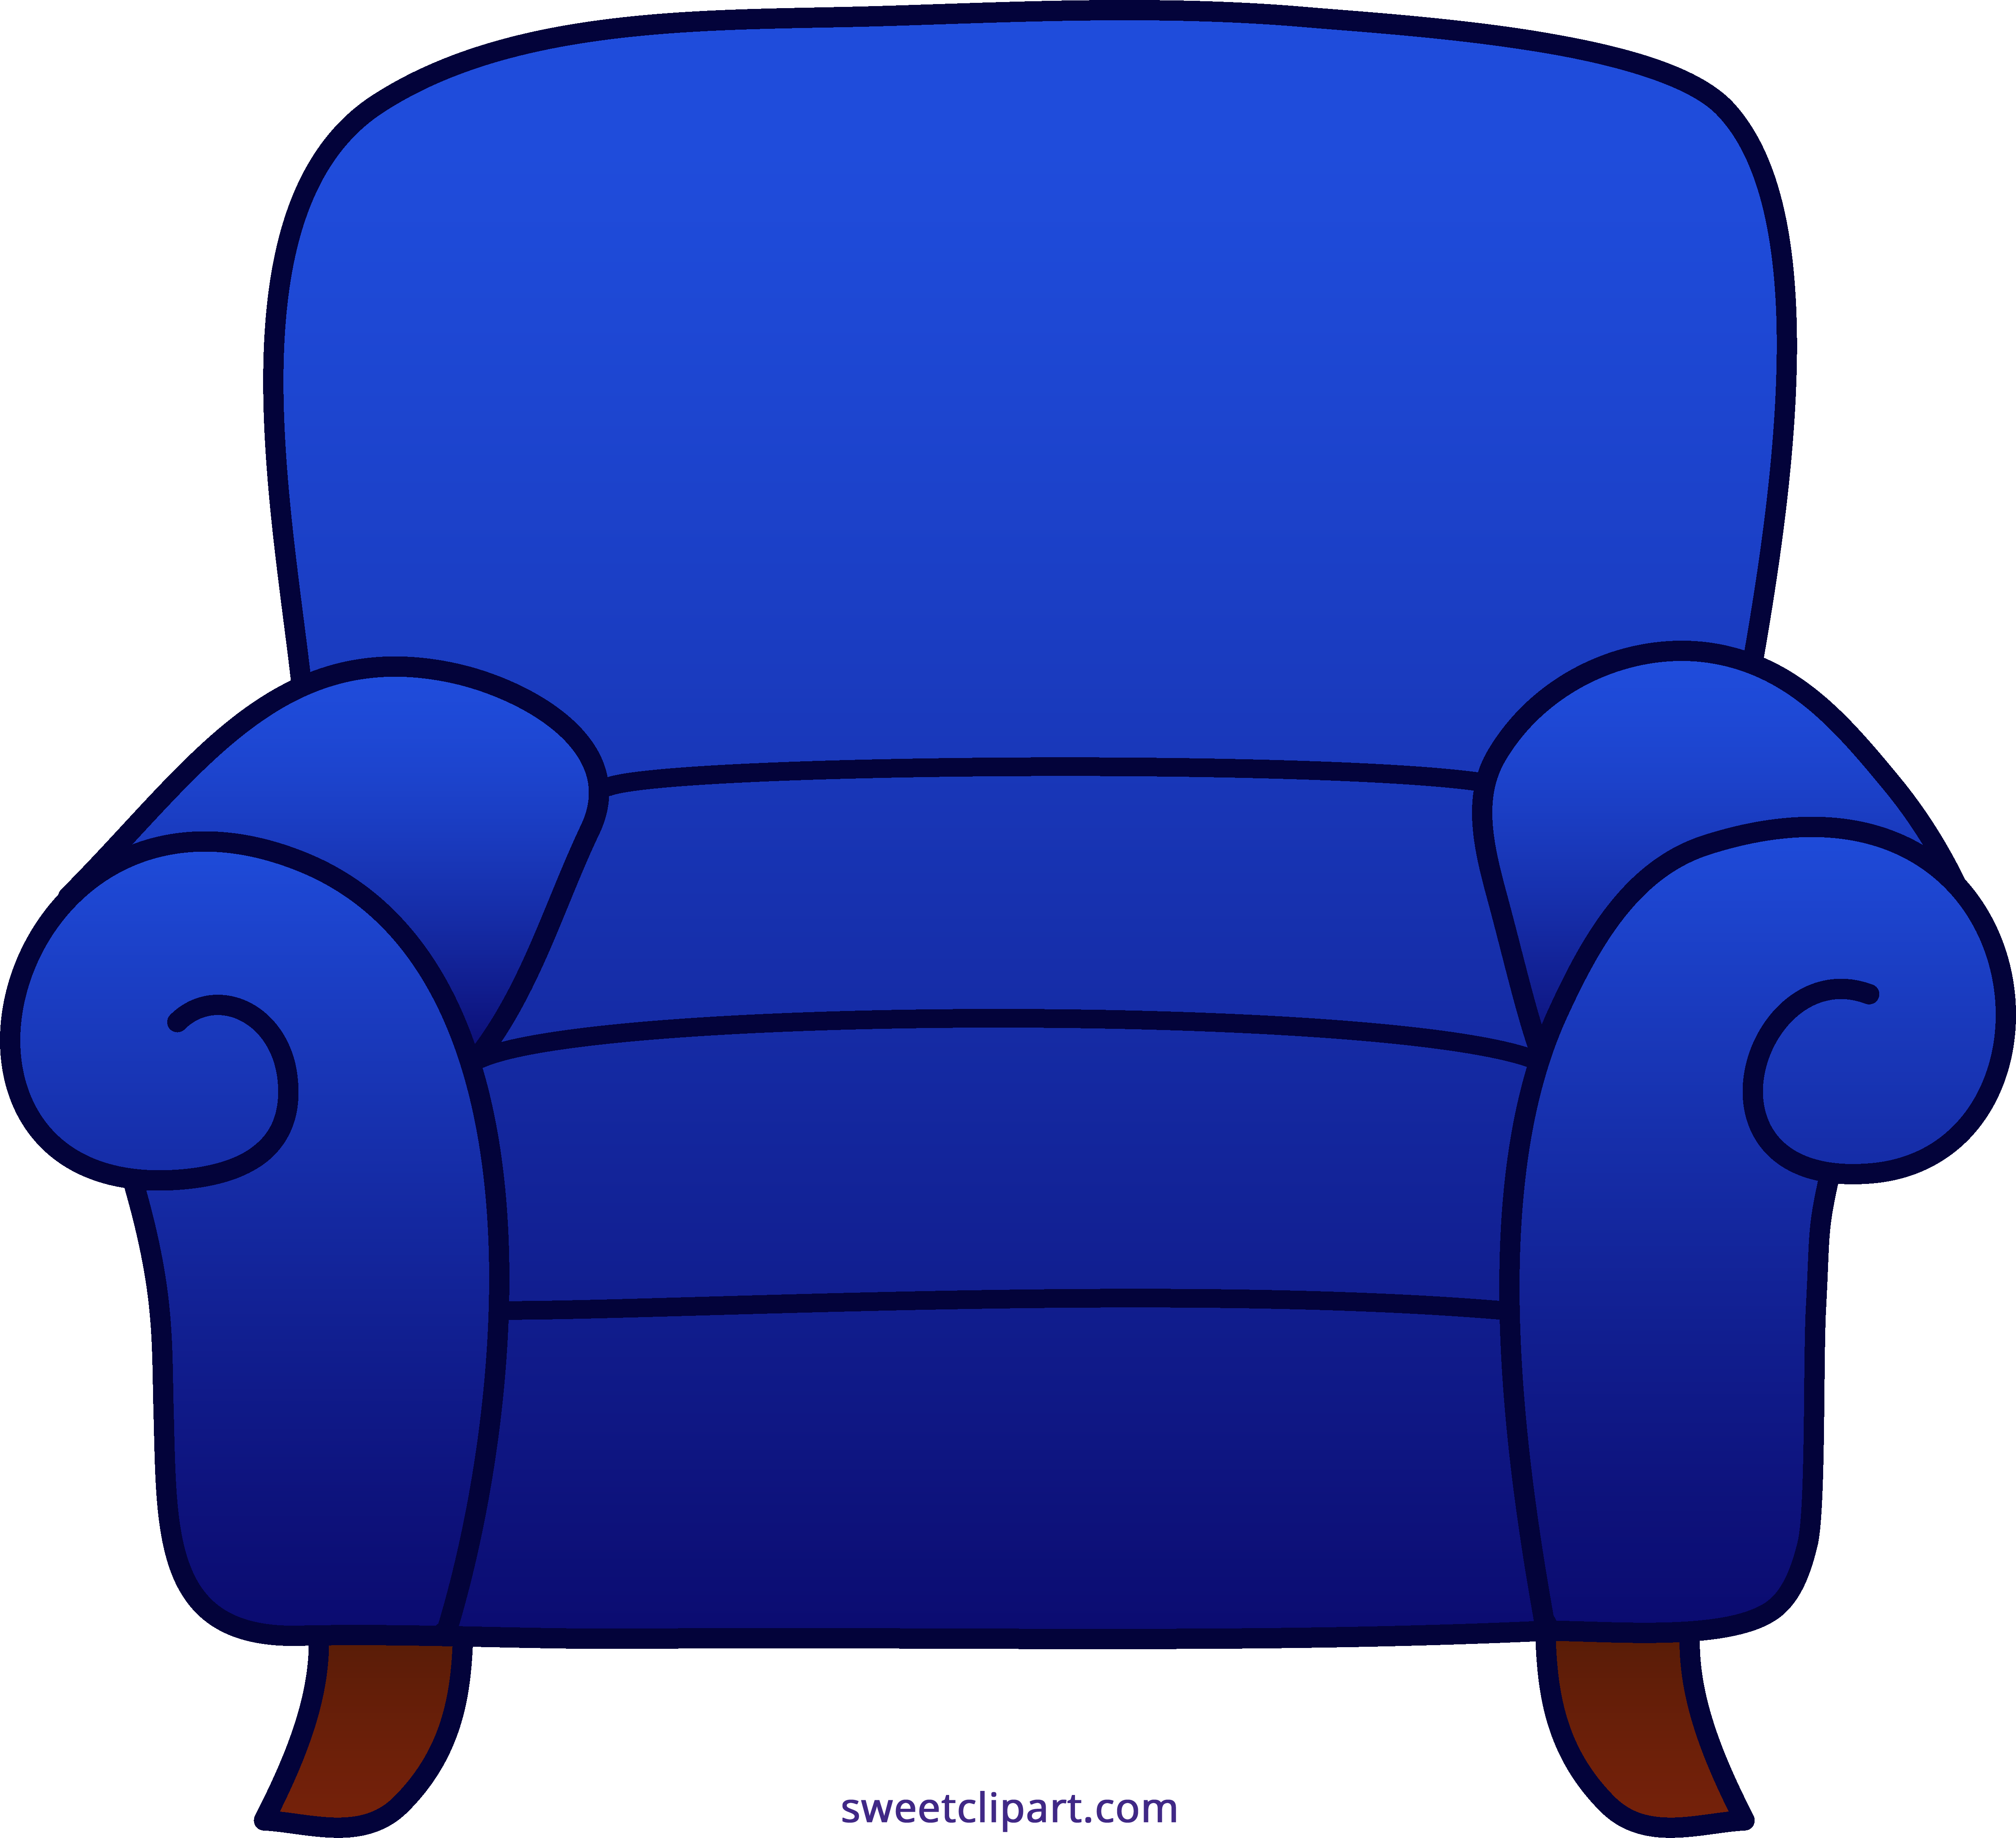 Facebook blue clipart banner freeuse stock Armchair Blue Clipart - Sweet Clip Art banner freeuse stock